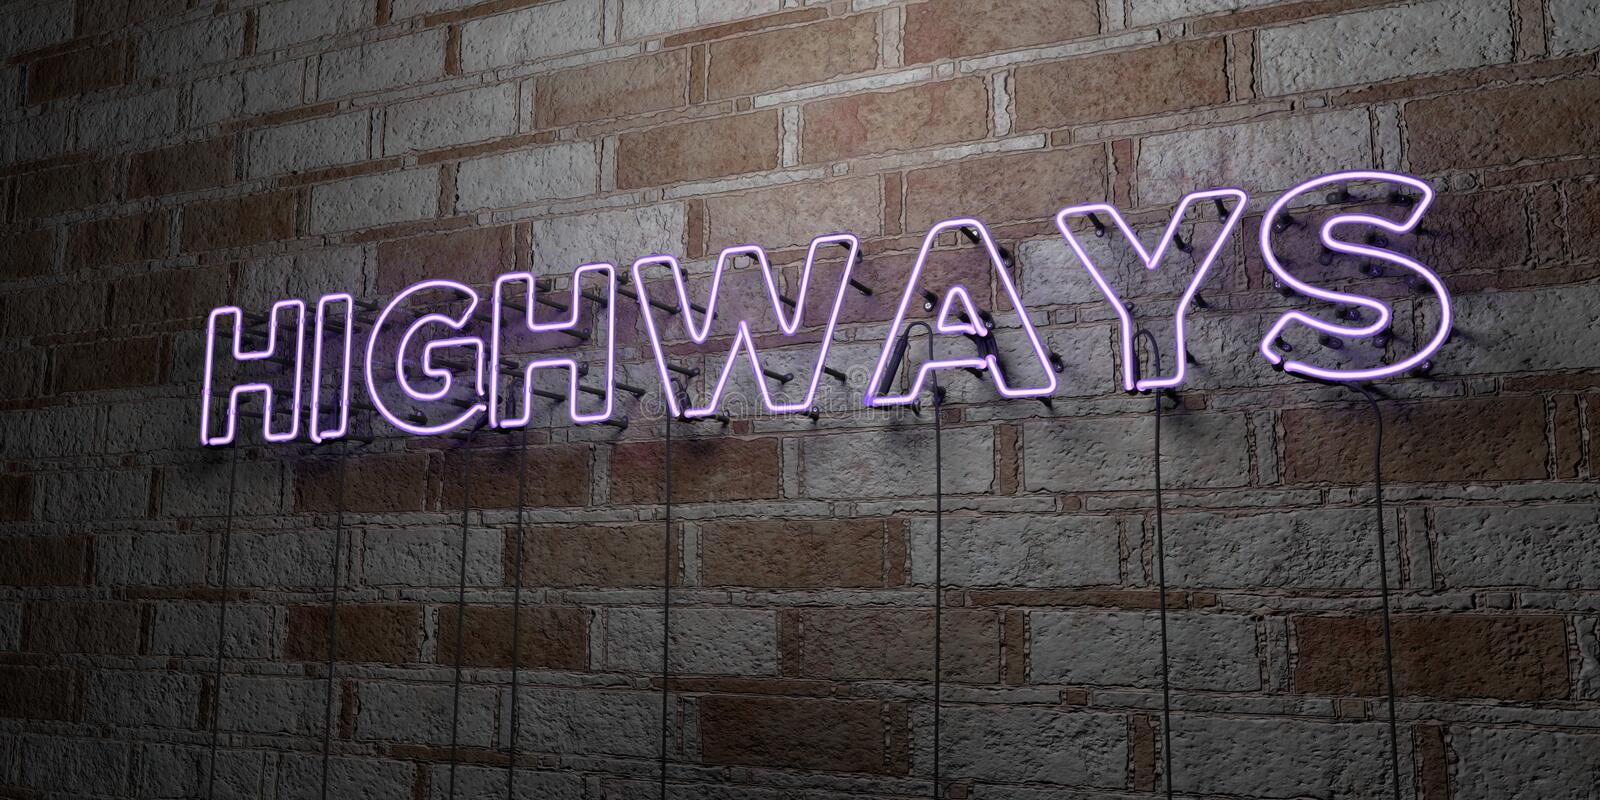 HIGHWAYS - Glowing Neon Sign on stonework wall - 3D rendered royalty free stock illustration. Can be used for online banner ads and direct mailers stock illustration